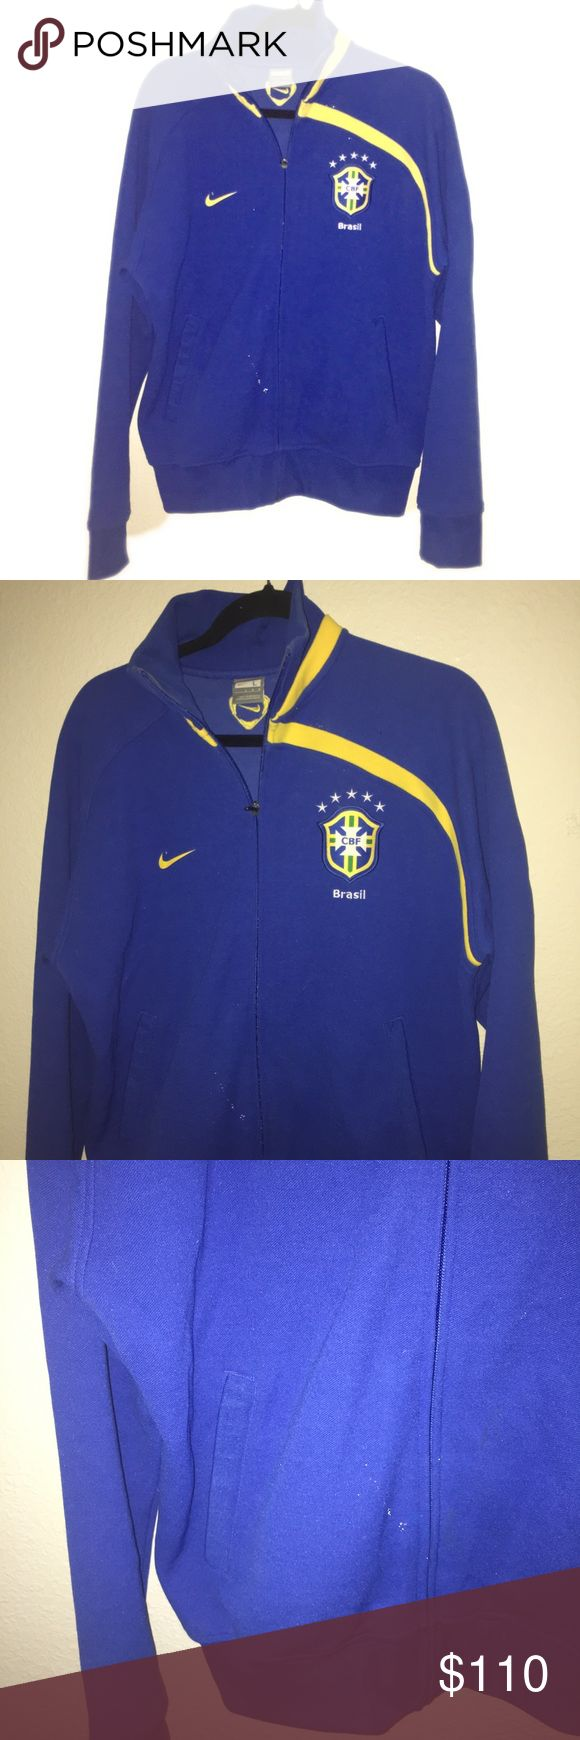 Nike Brazil 🇧🇷 Soccer Jacket. Sz L Nike Brazil 🇧🇷 Soccer Jacket. Sz L Beautiful jacket, collectors piece for Nike Brasil Soccer/Football fans. Long in torso and arms. Zip front. Warm and durable. Nike Jackets & Coats Performance Jackets